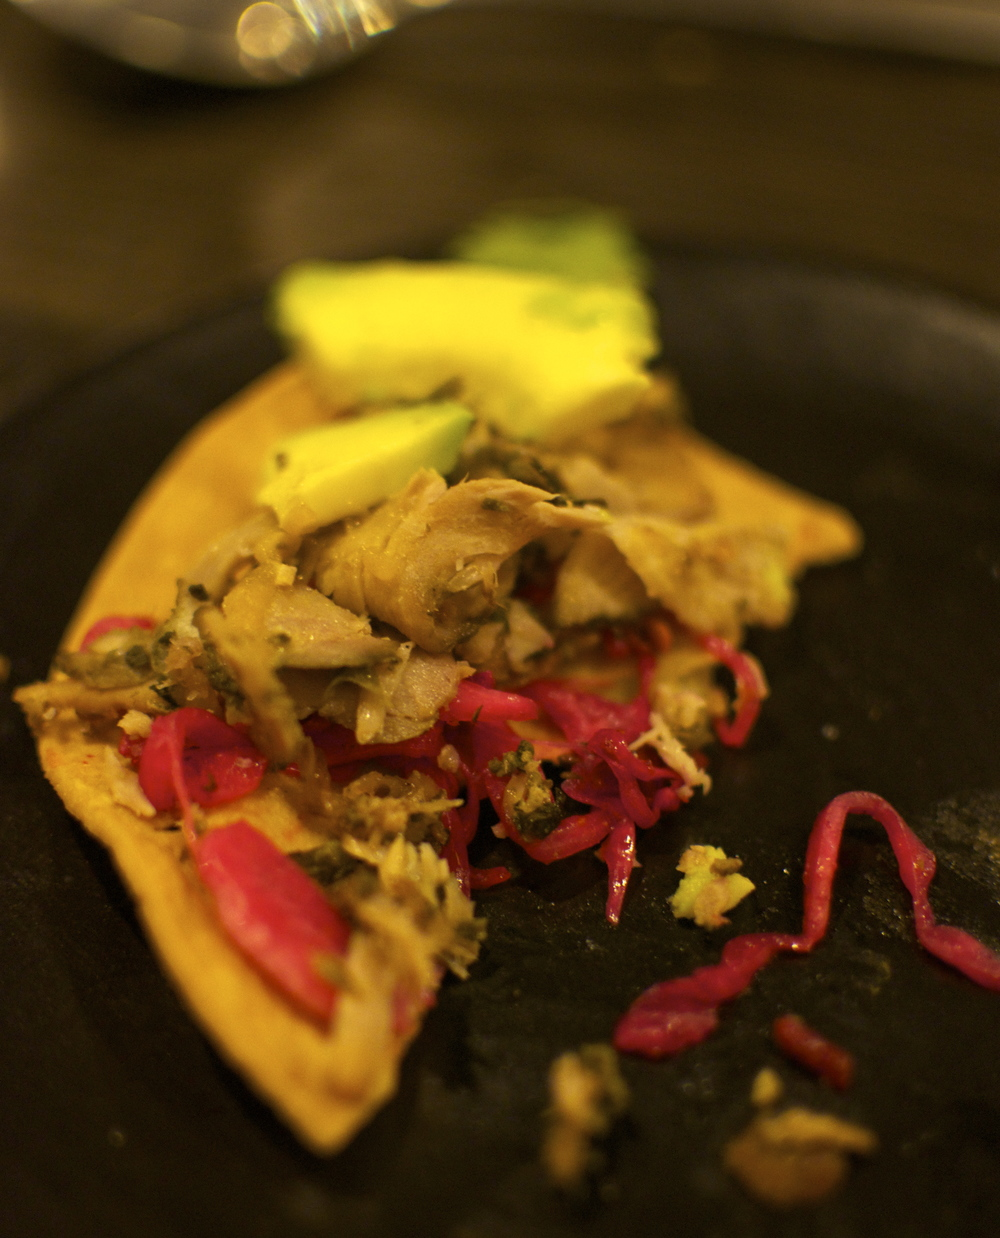 Thinly sliced roasted pork, chimichurri, avocado and pickled onions on a tostada.  The pork was so tender and flavourful and the pickled onions really made the dish come alive.  I think this would be similar to the Rosti-Puerco Cemita.